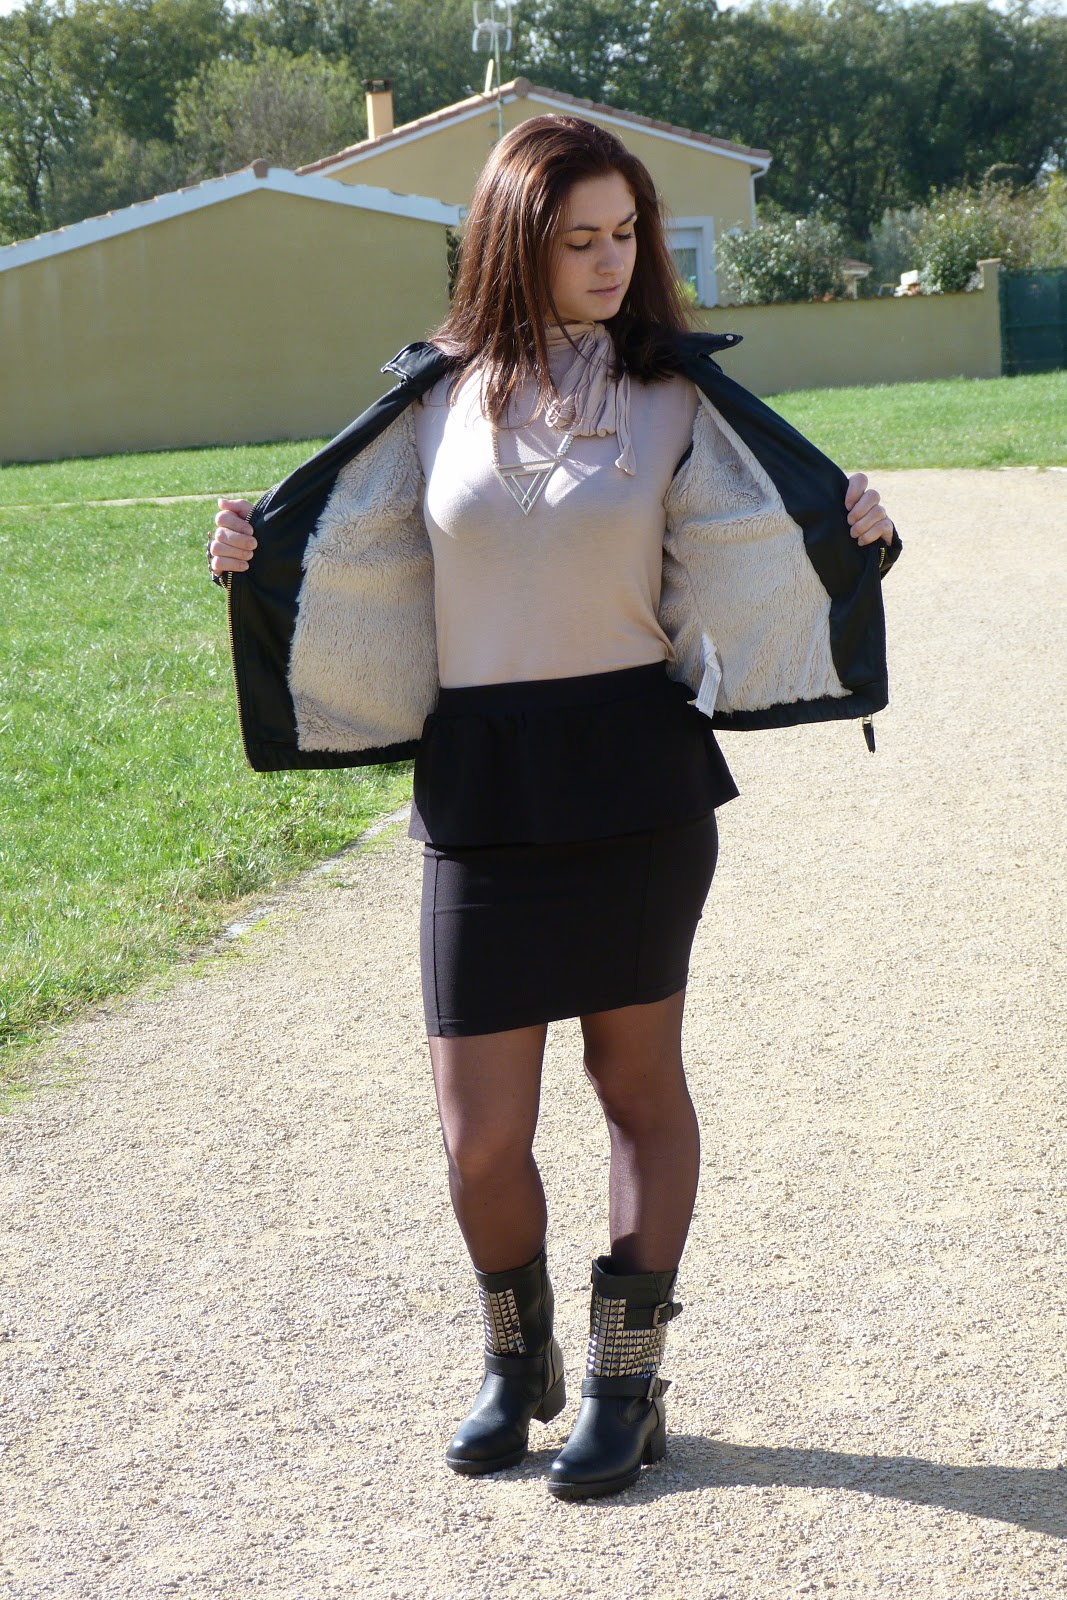 Street Style Legwear Looks Boreale Fashionmylegs The Tights And